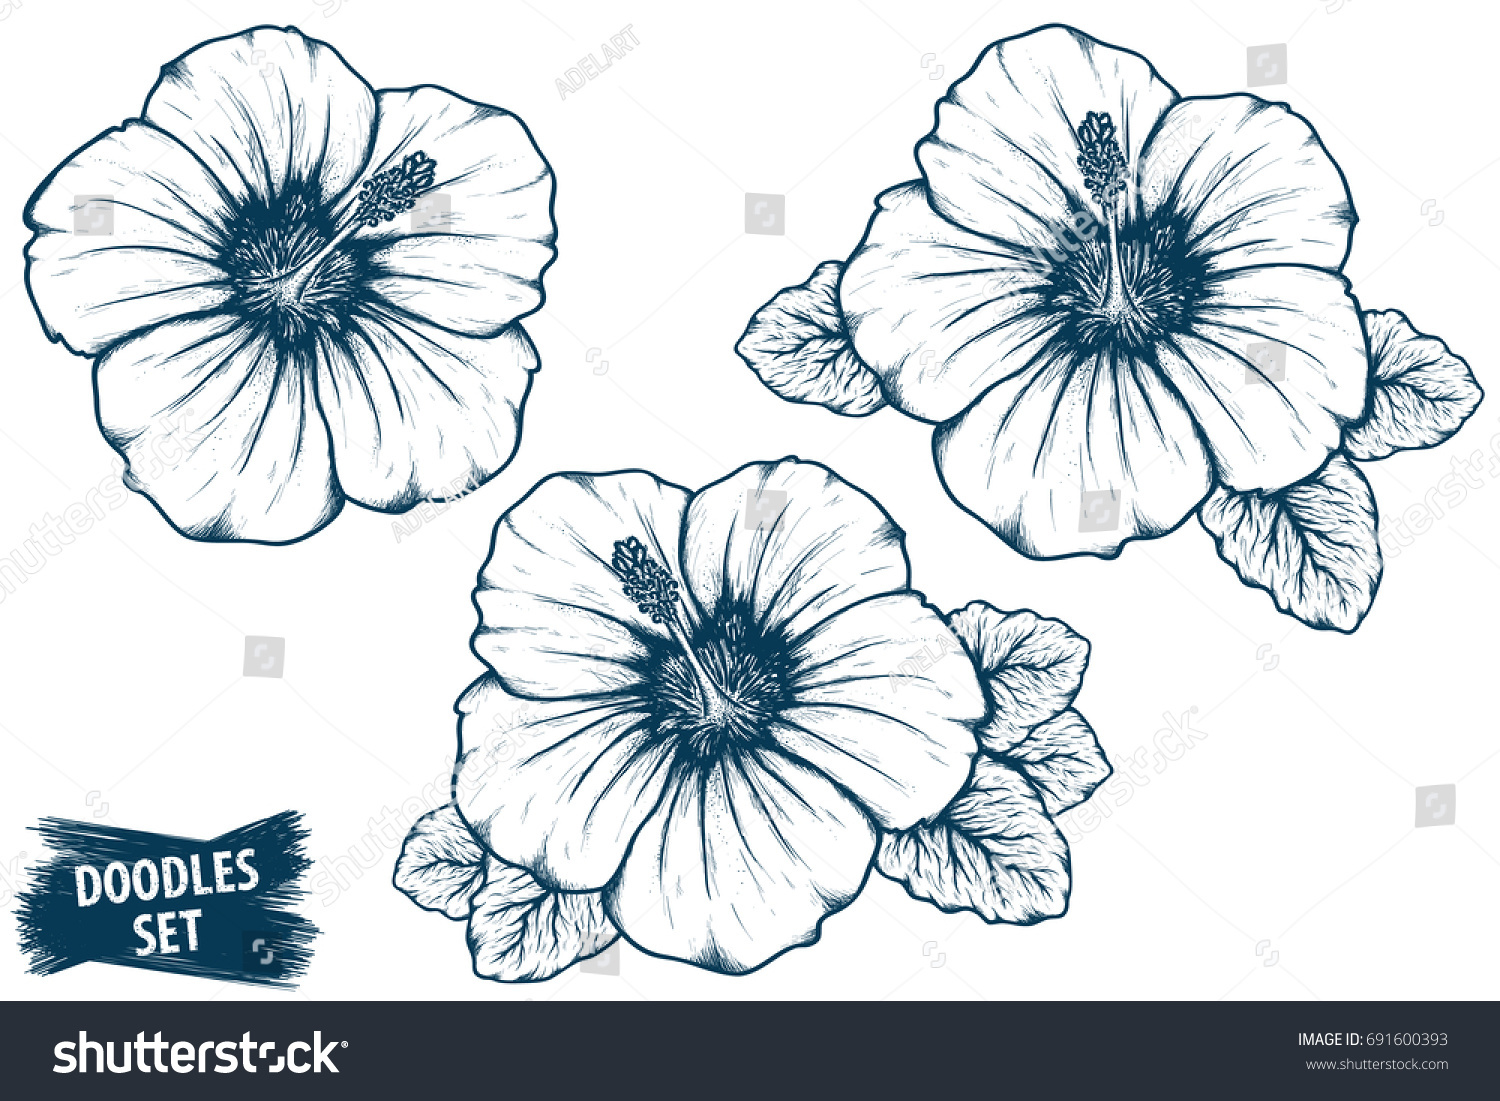 Hawaiian Flower Line Drawing : Hibiscus flower sketch tropical plant doodle stock vector